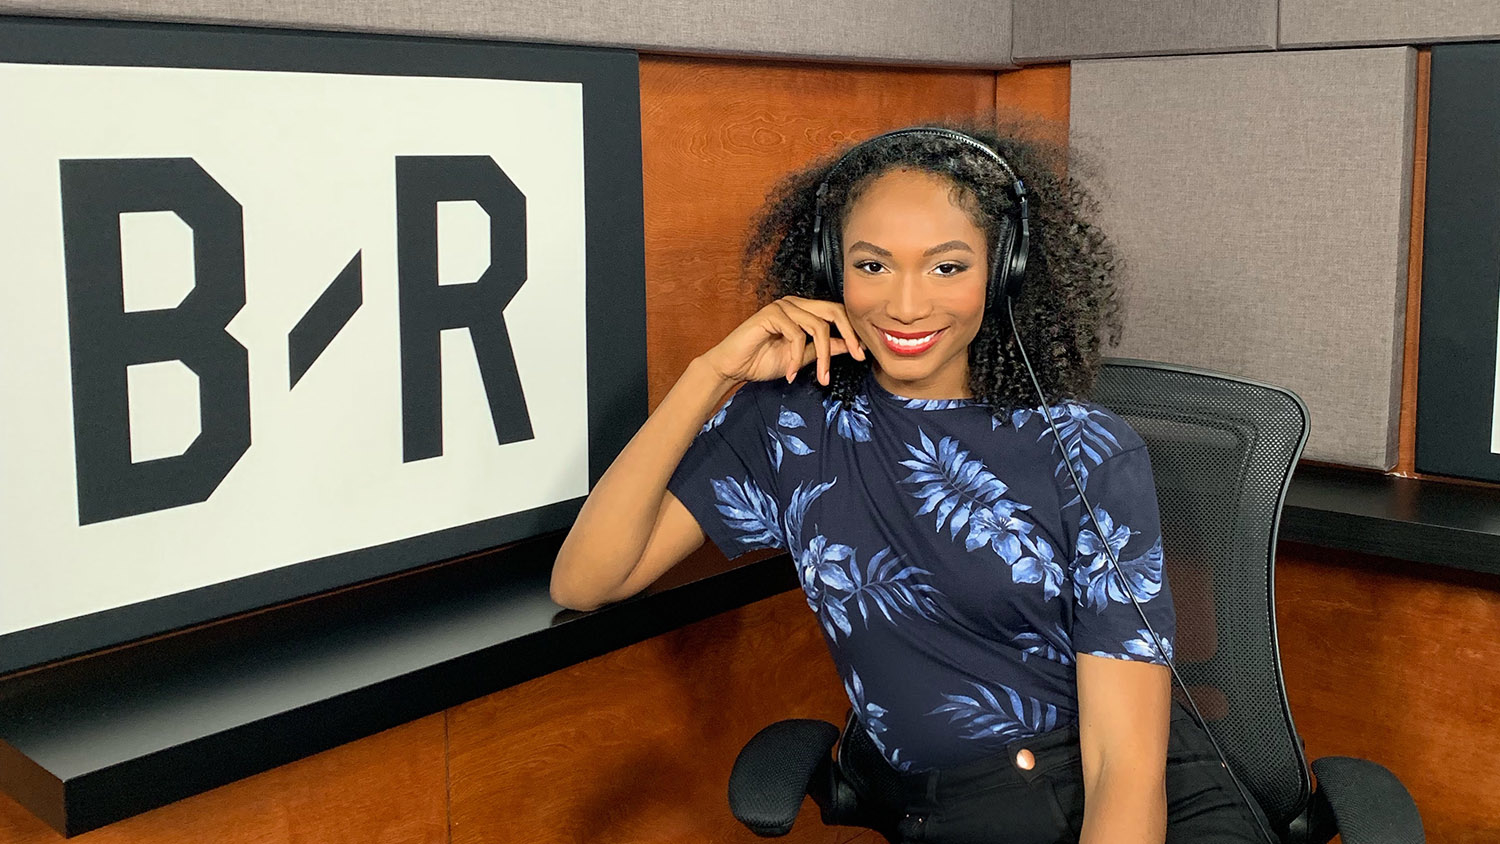 Arielle Chambers wearing a headset in a recording booth.